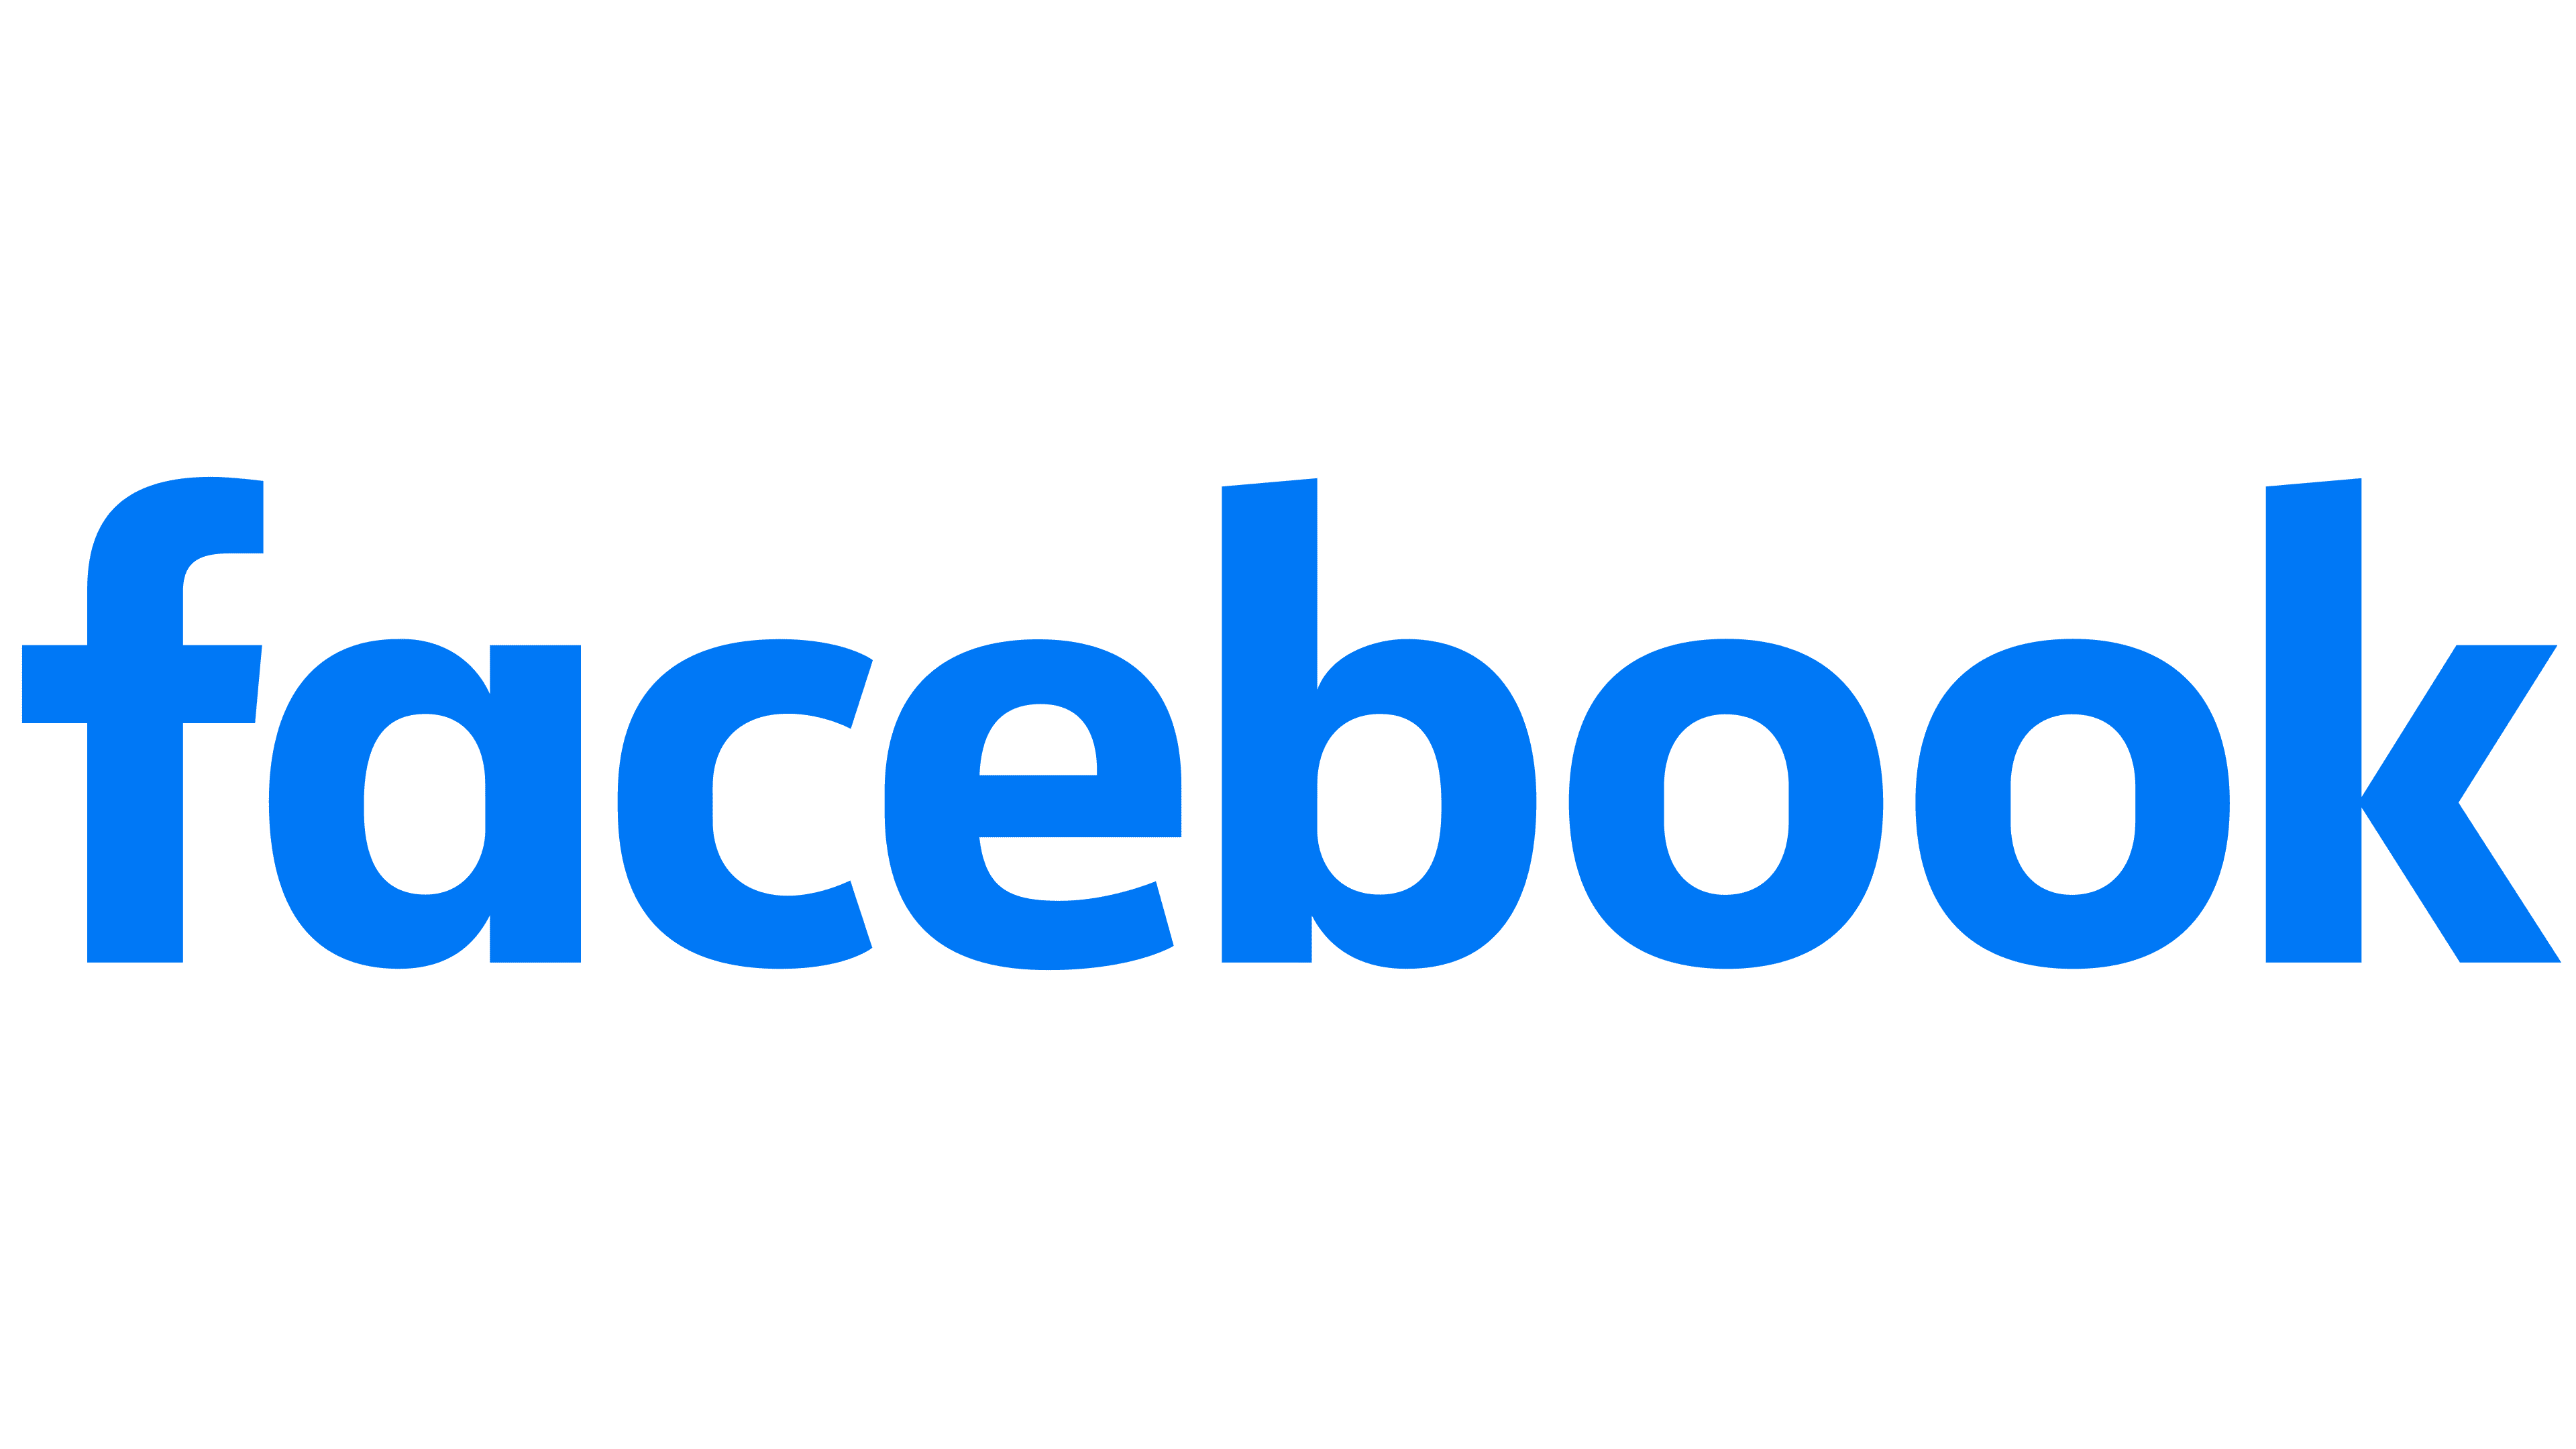 Facebook Logo The Most Famous Brands And Company Logos In The World Share photos and videos, send messages and get updates. facebook logo the most famous brands